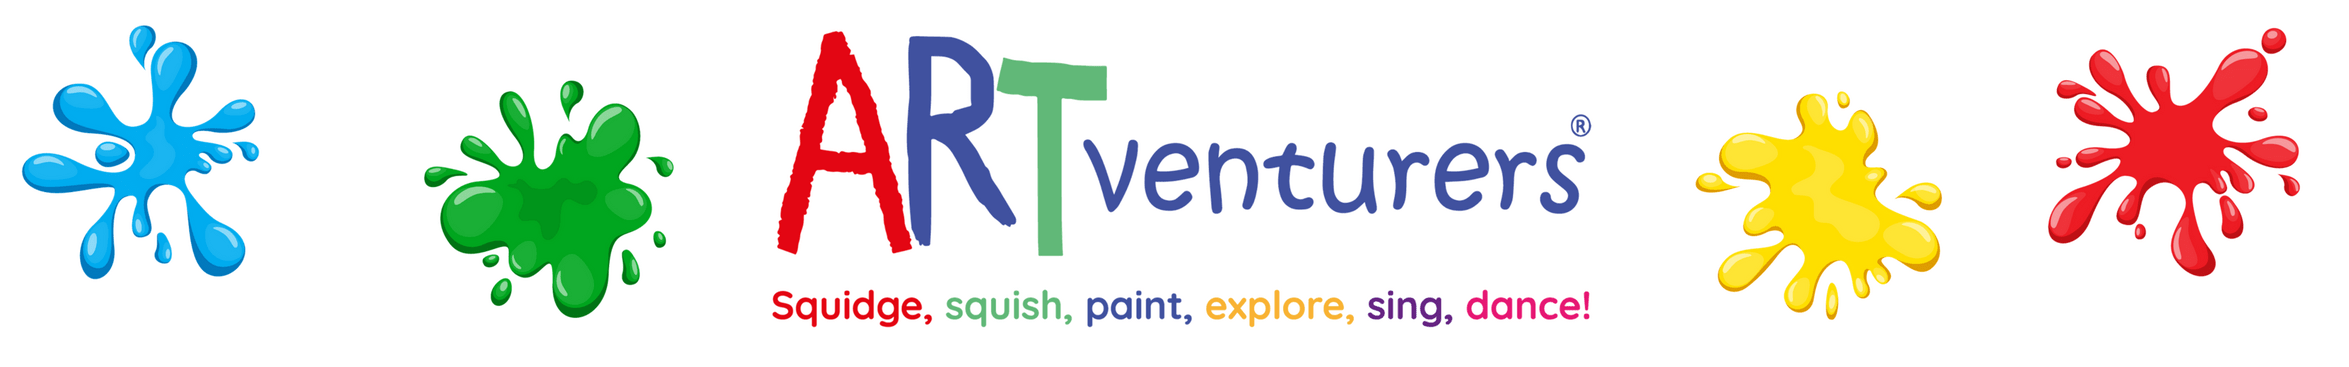 ARTventurers Bishop's Stortford, Harlow & Epping